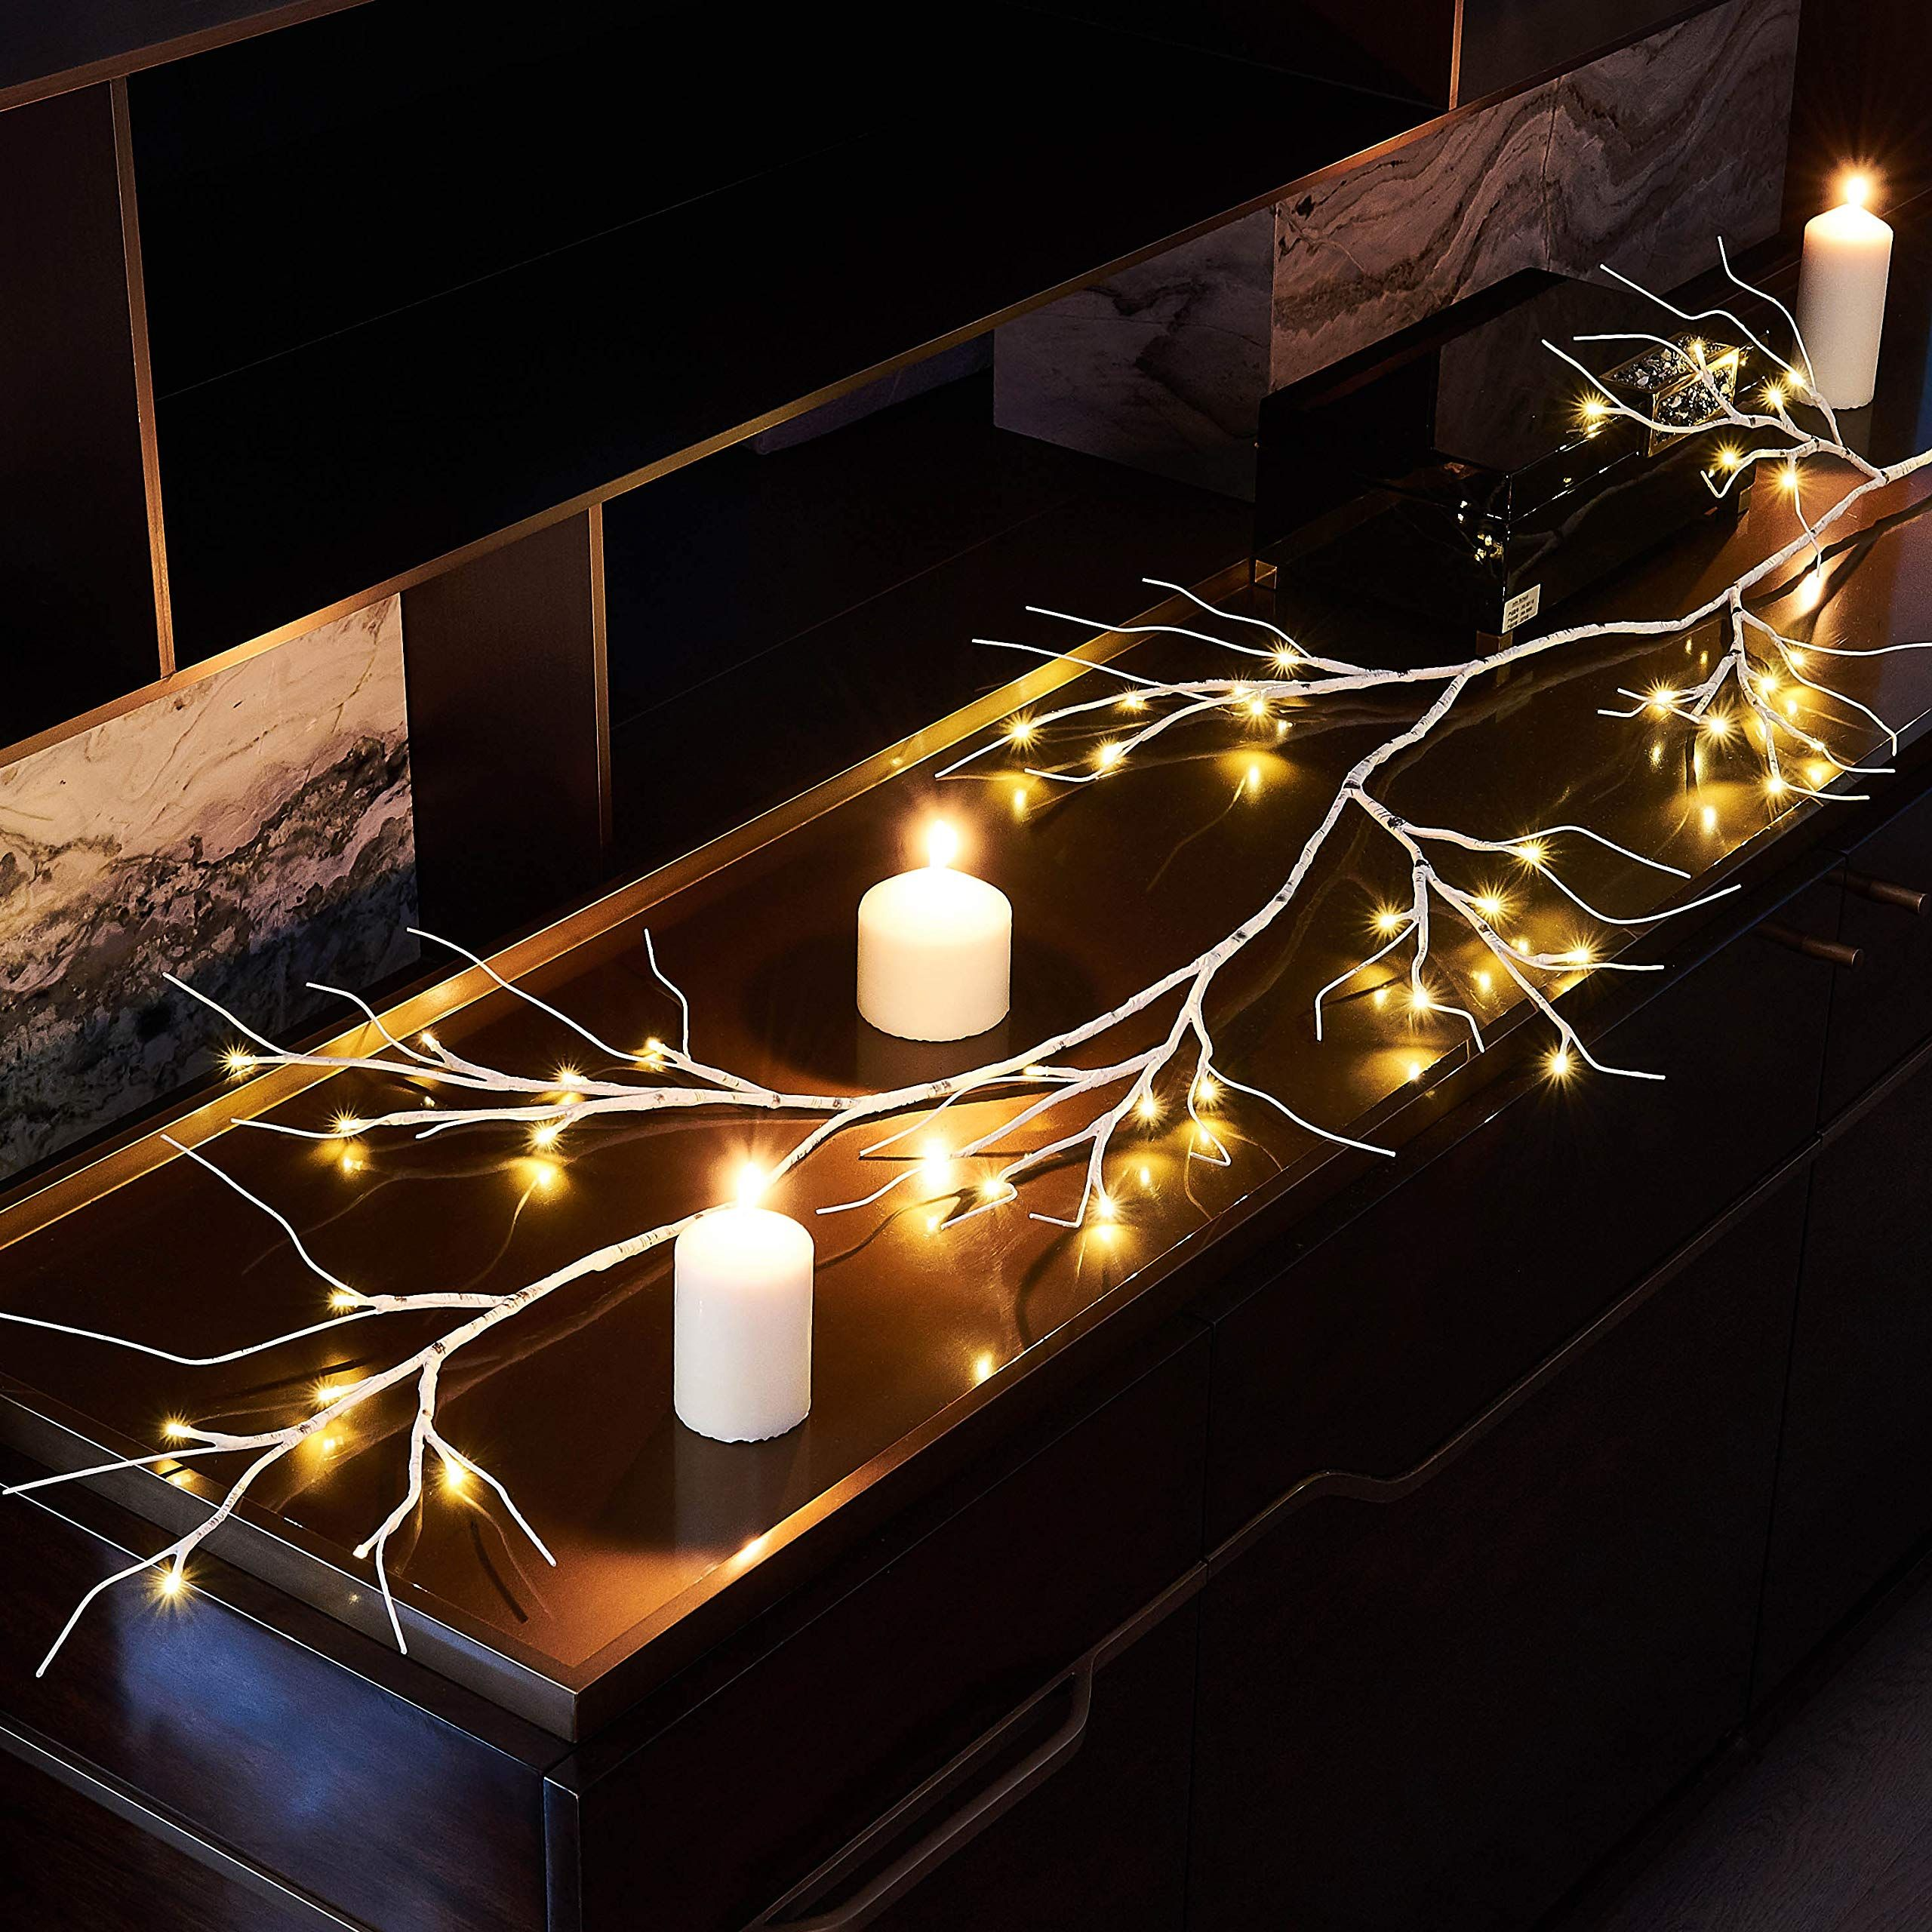 Hairui Winter Birch Garland with Lights 6FT 48 LED Battery